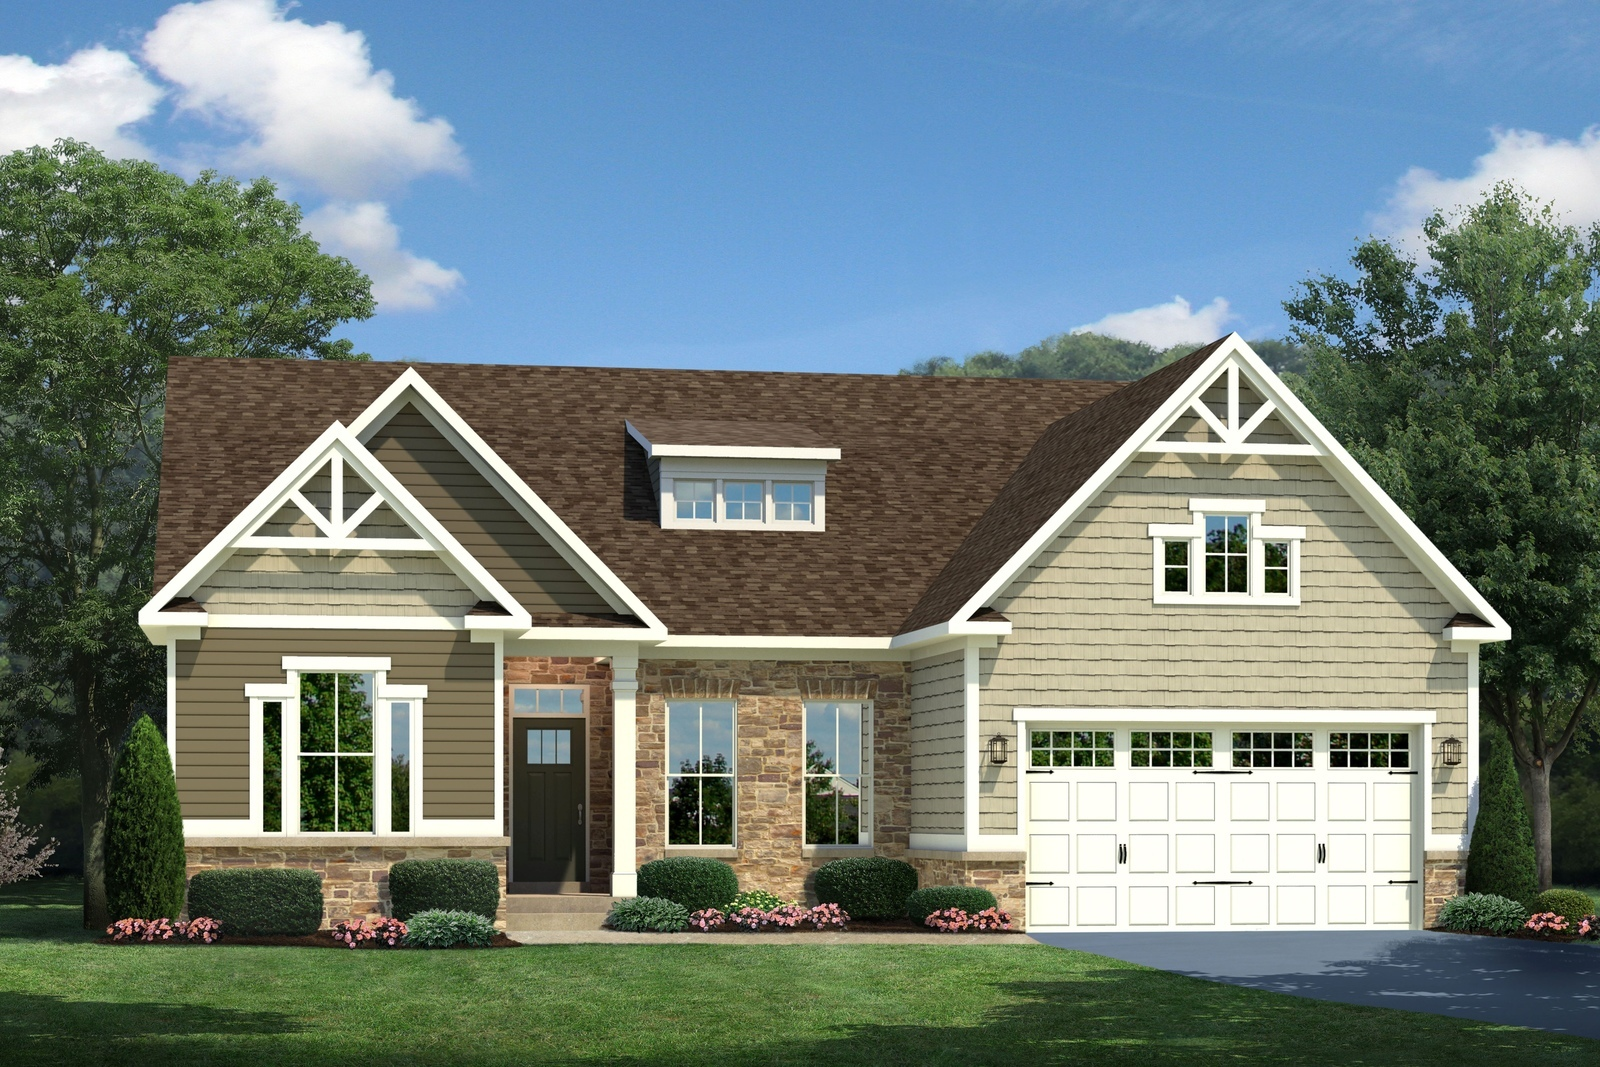 New springmanor home model for sale at turnberry in fishers in for Ryan homes design center maryland